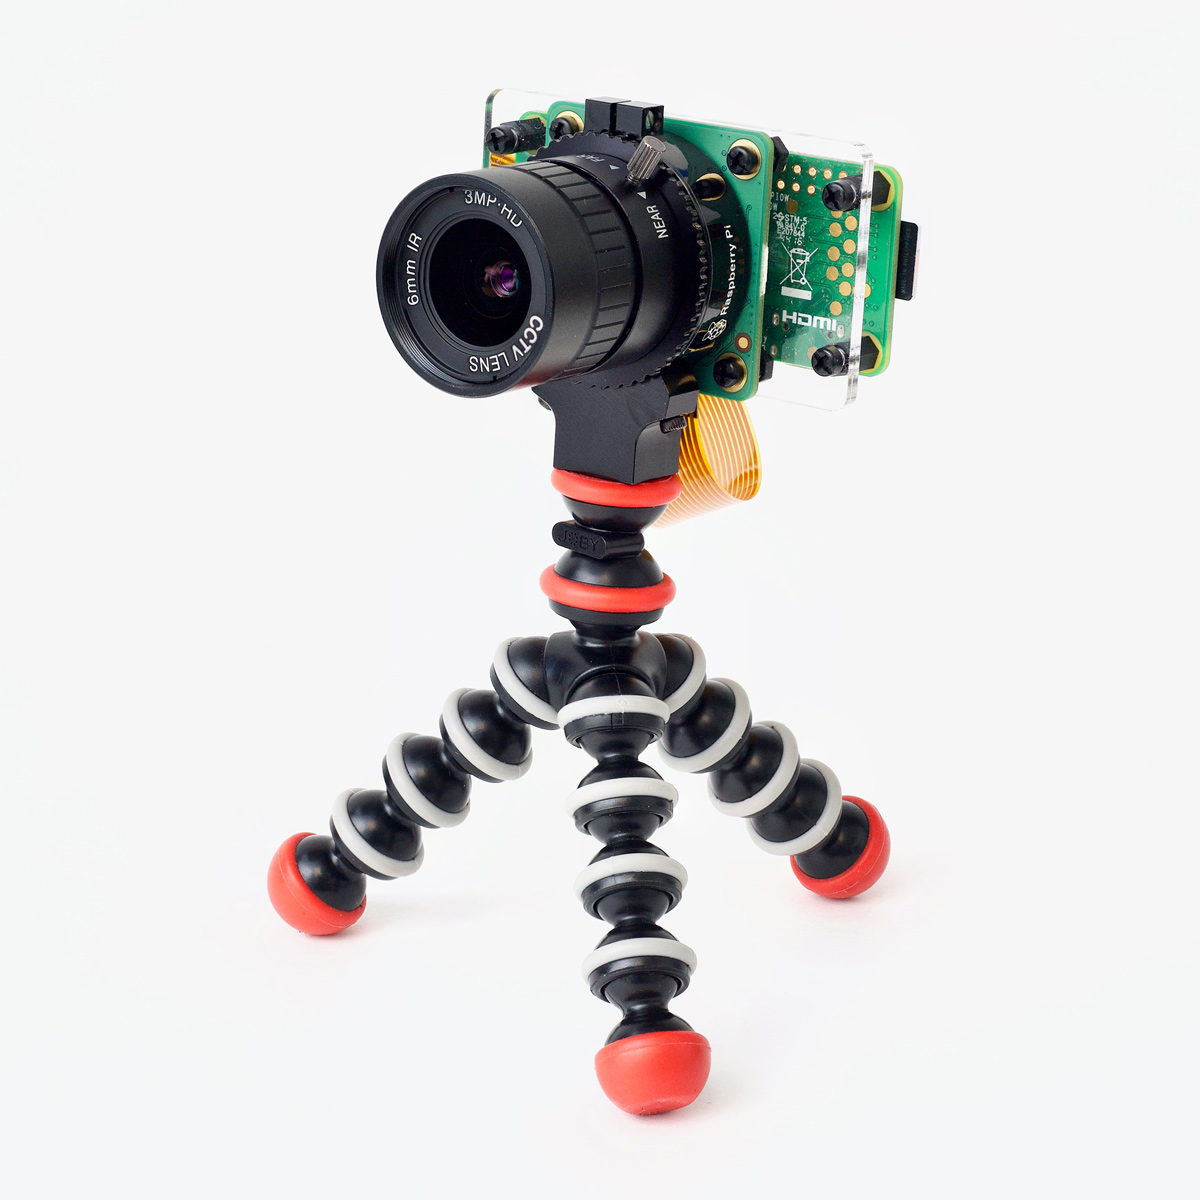 Pi Webcam on Tripod - Pi Zero W and HQ Camera